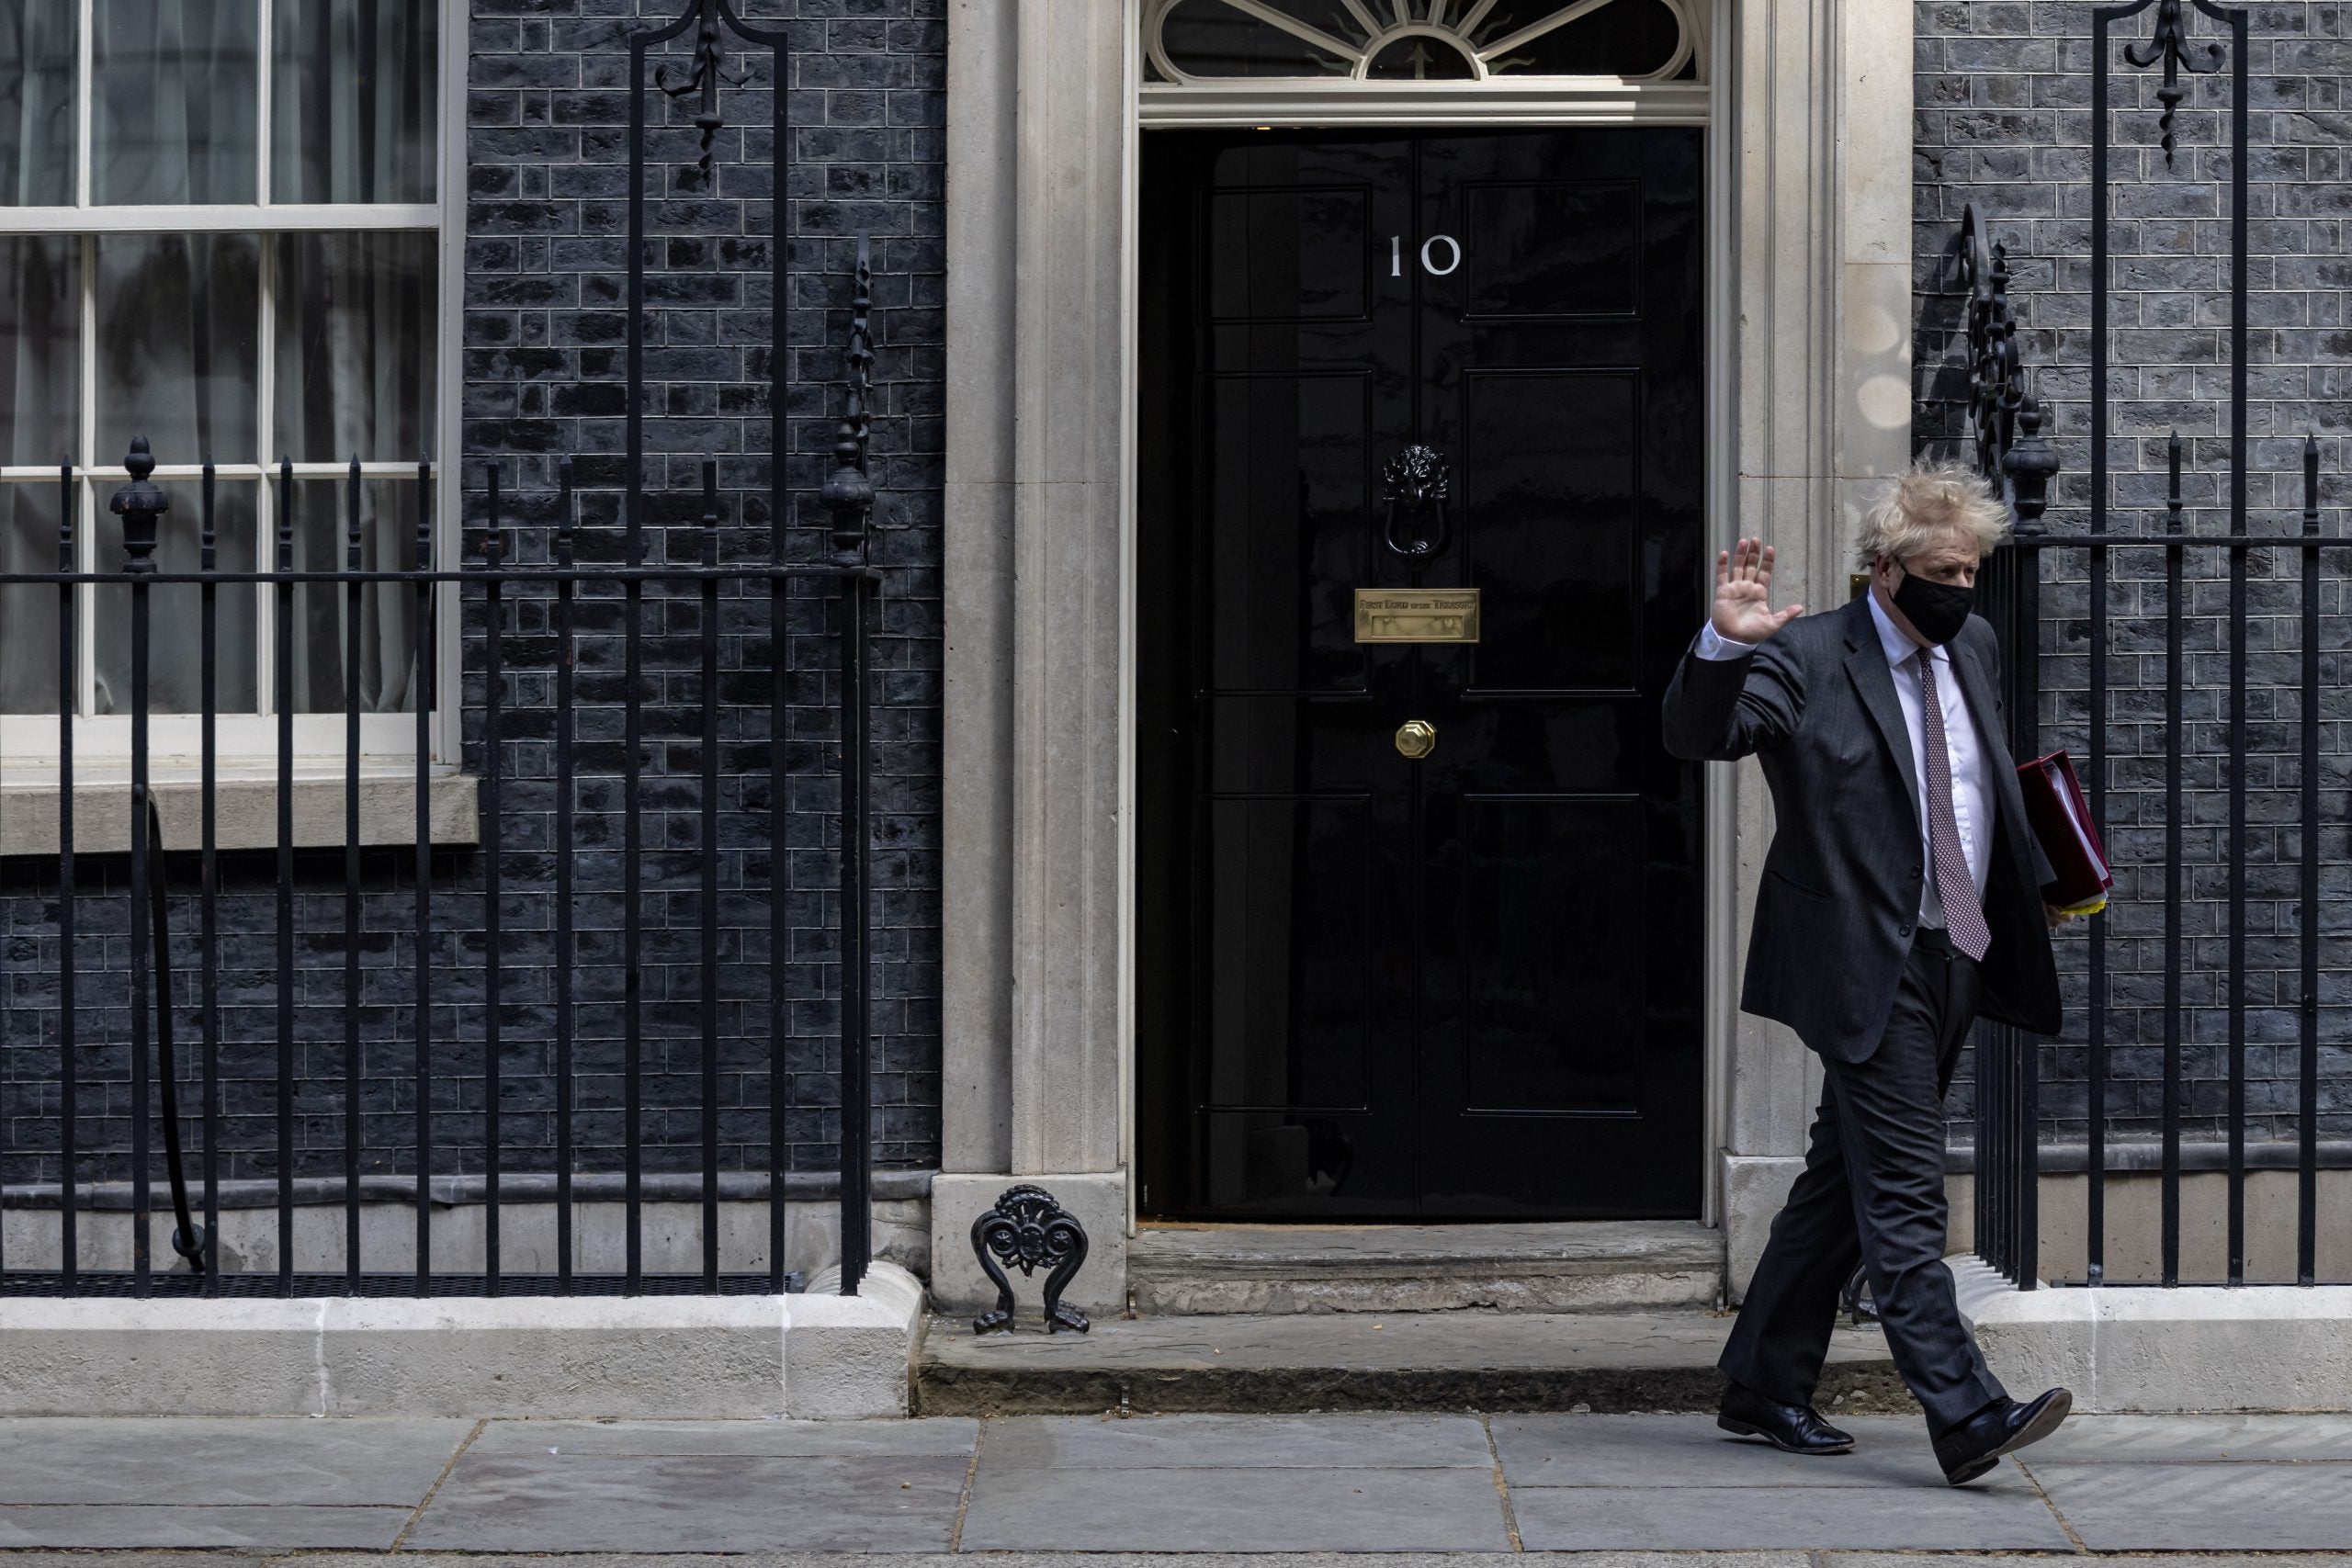 How does Boris Johnson's living situation compare to those of other world leaders?